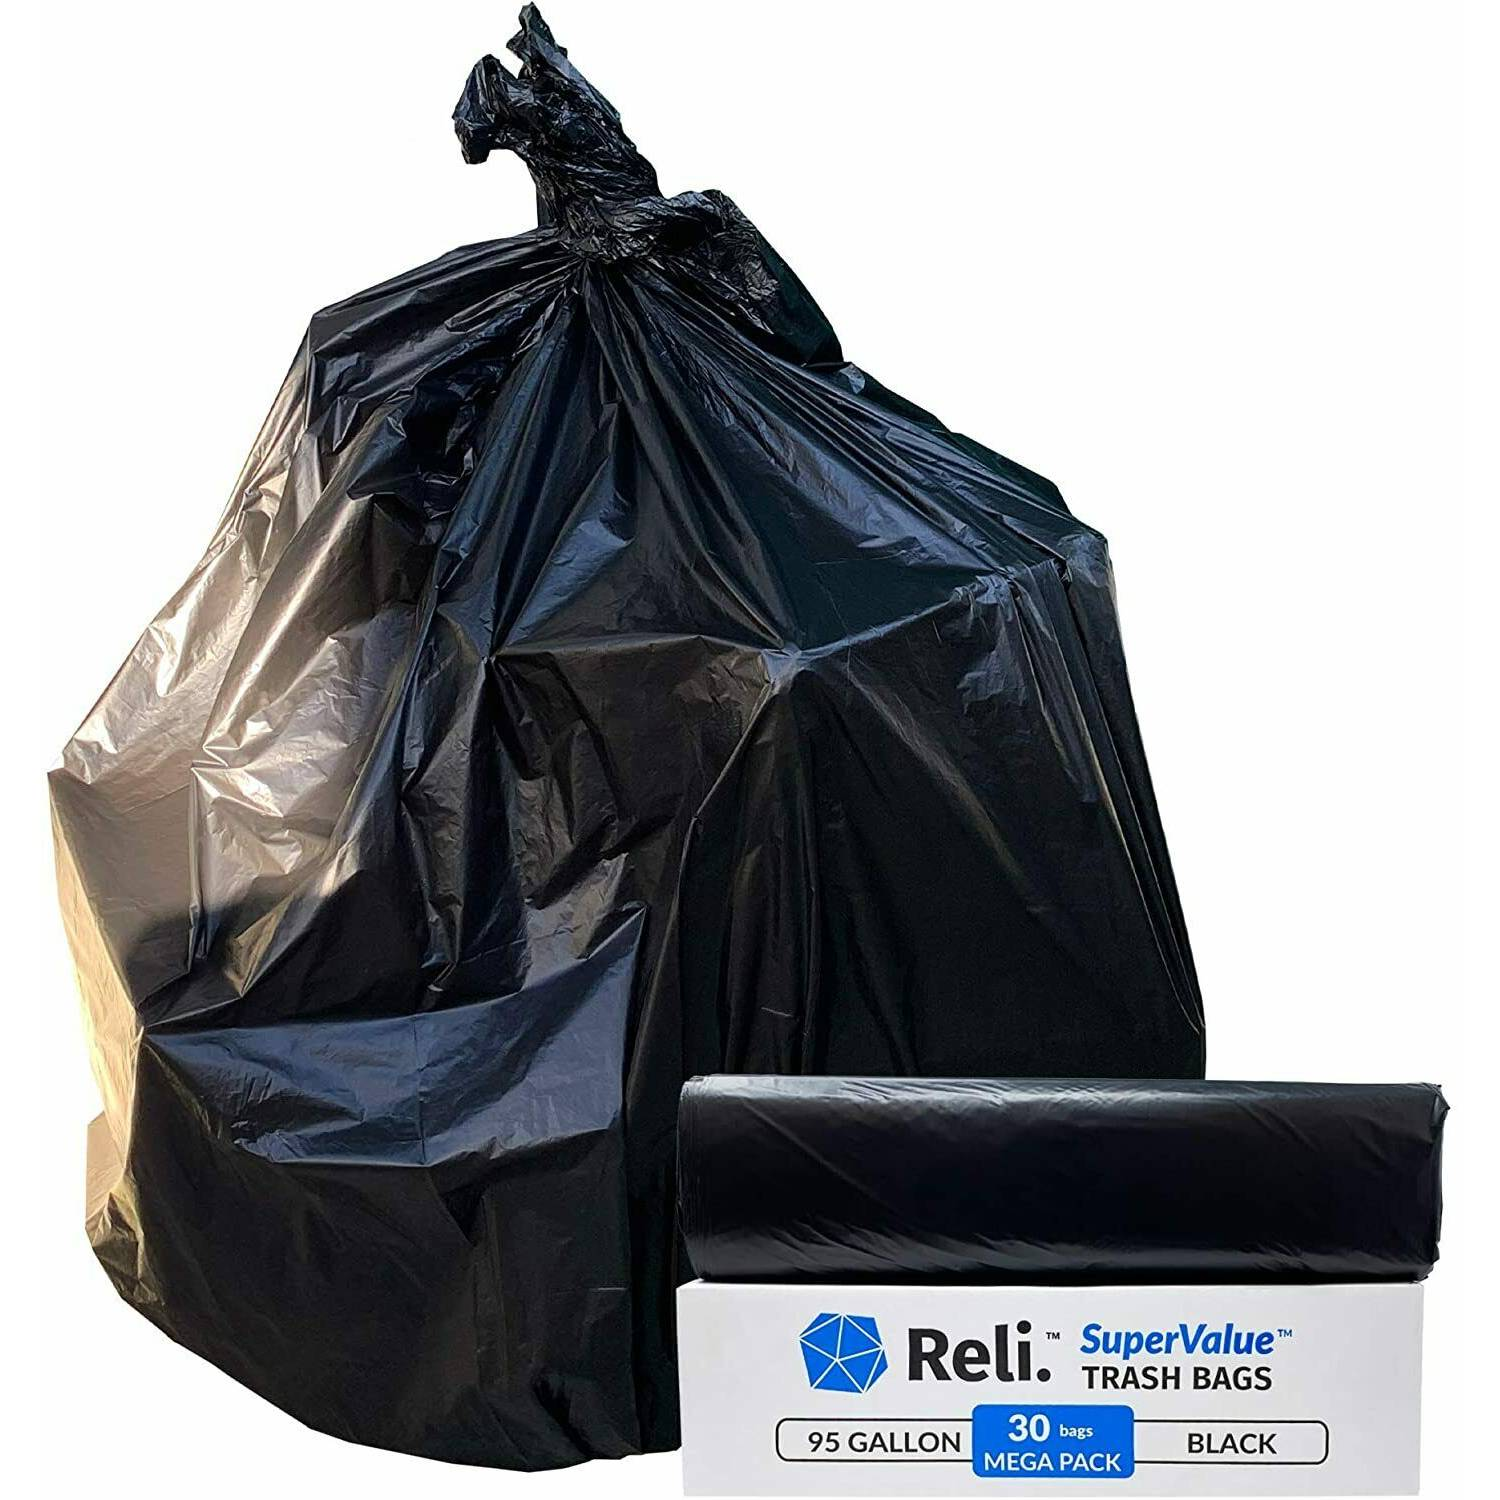 SuperValue 95 Gallon Trash Bags Heavy Duty Black Garbage Bags (30 Count)